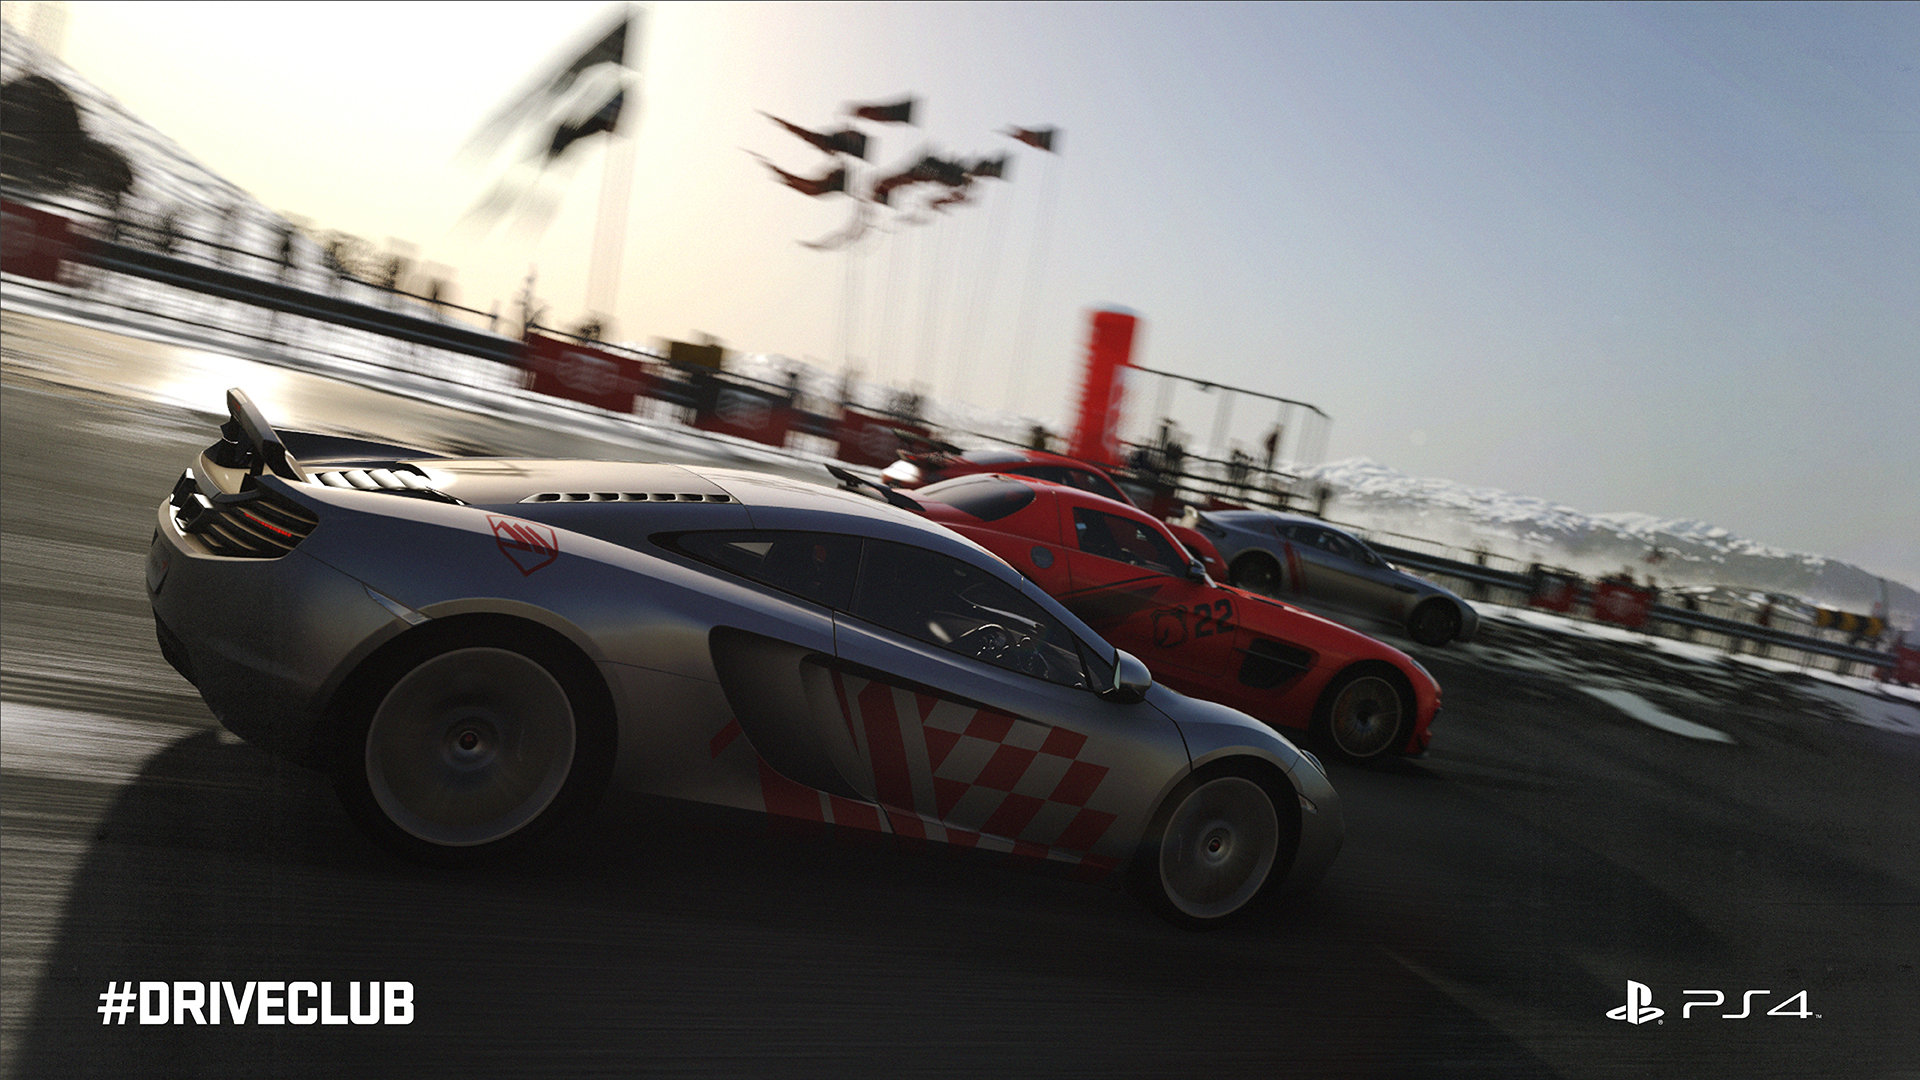 driveclub-screen-25-ps4-us-26aug14?$Medi